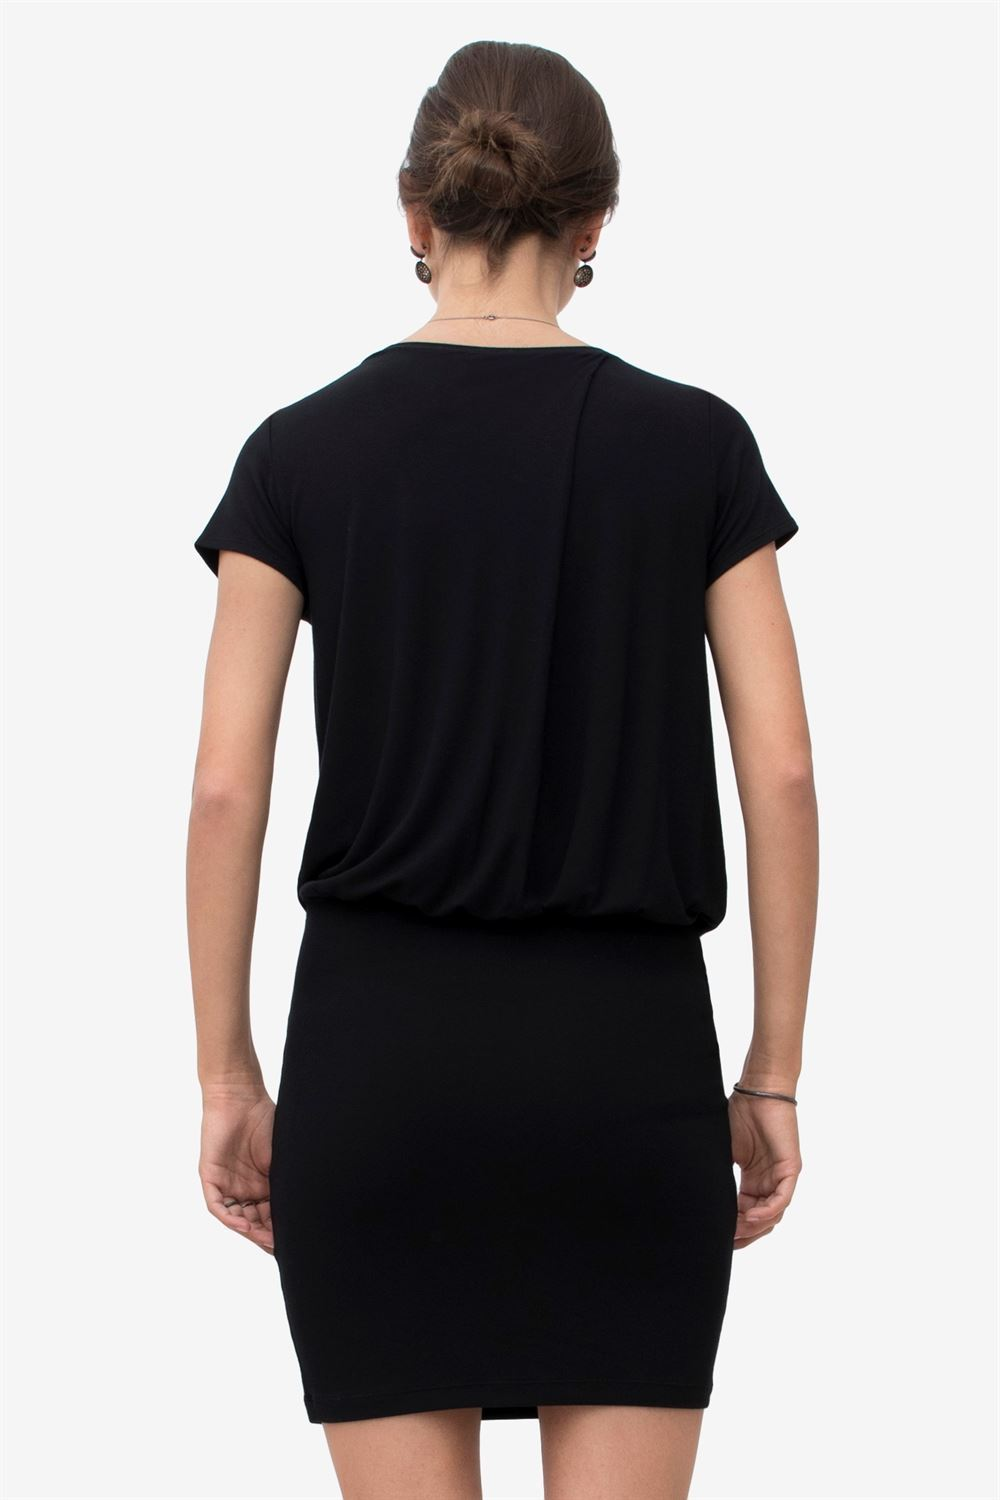 Black nursing dress with loose top and tight skirt - seen from behind